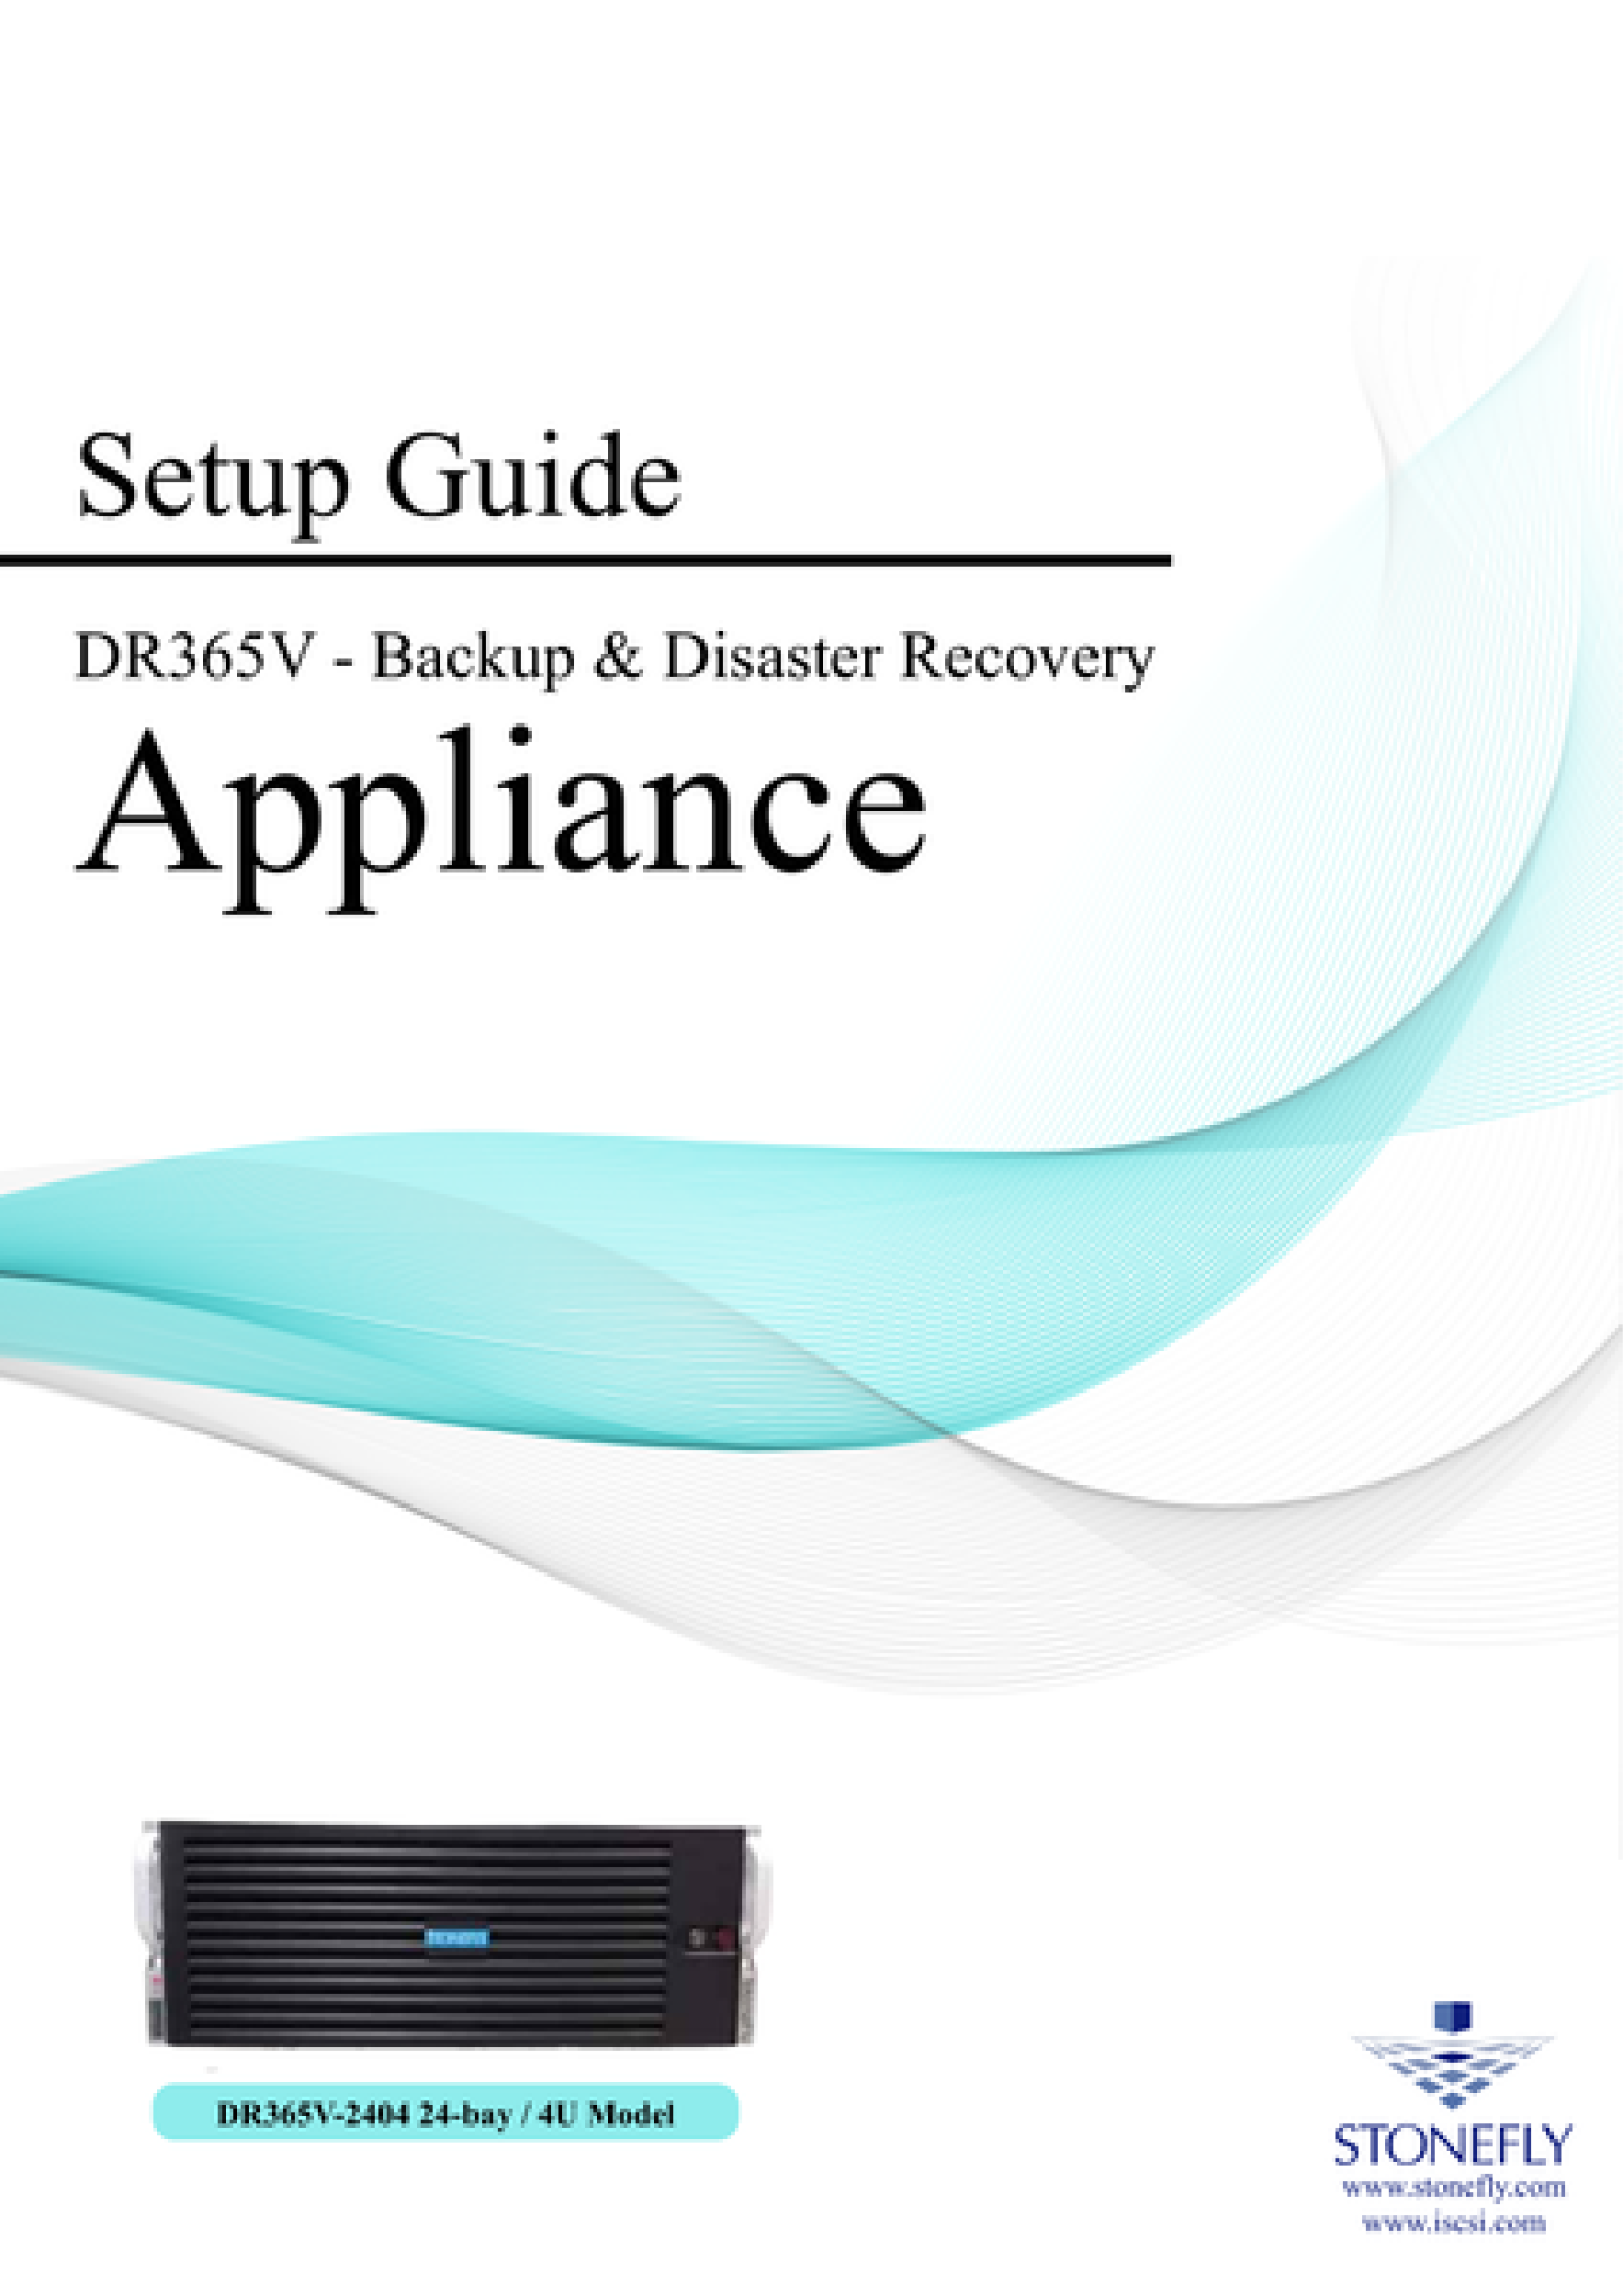 StoneFly Appliance and User Manuals 16